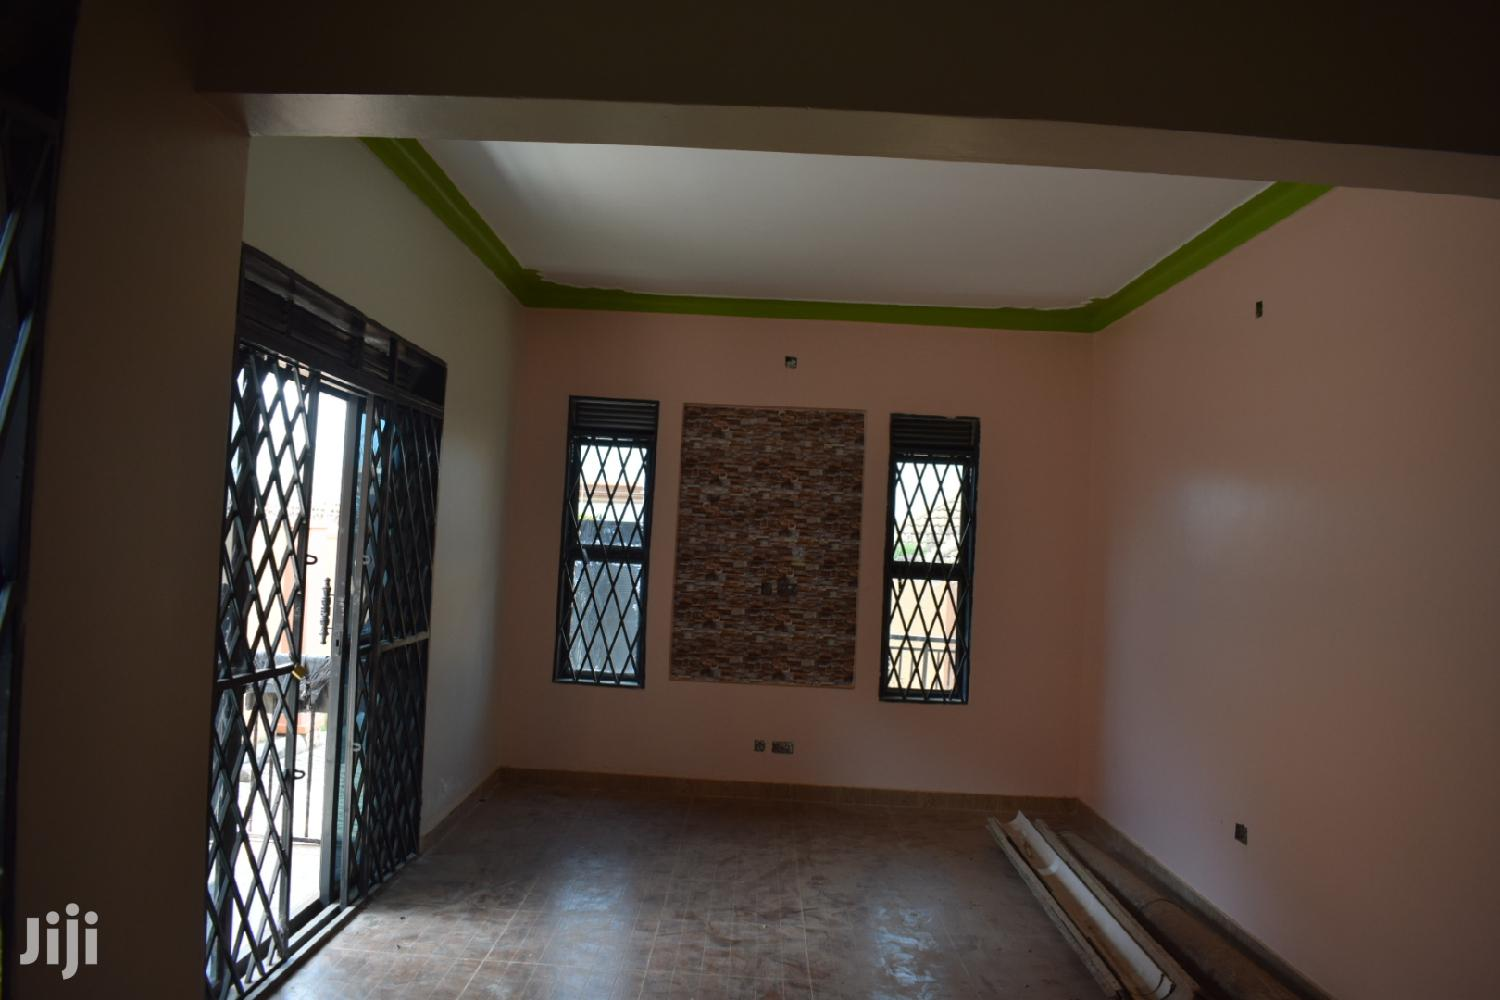 3 Bedrooms House For Sale In Kyanja | Houses & Apartments For Sale for sale in Kampala, Central Region, Uganda